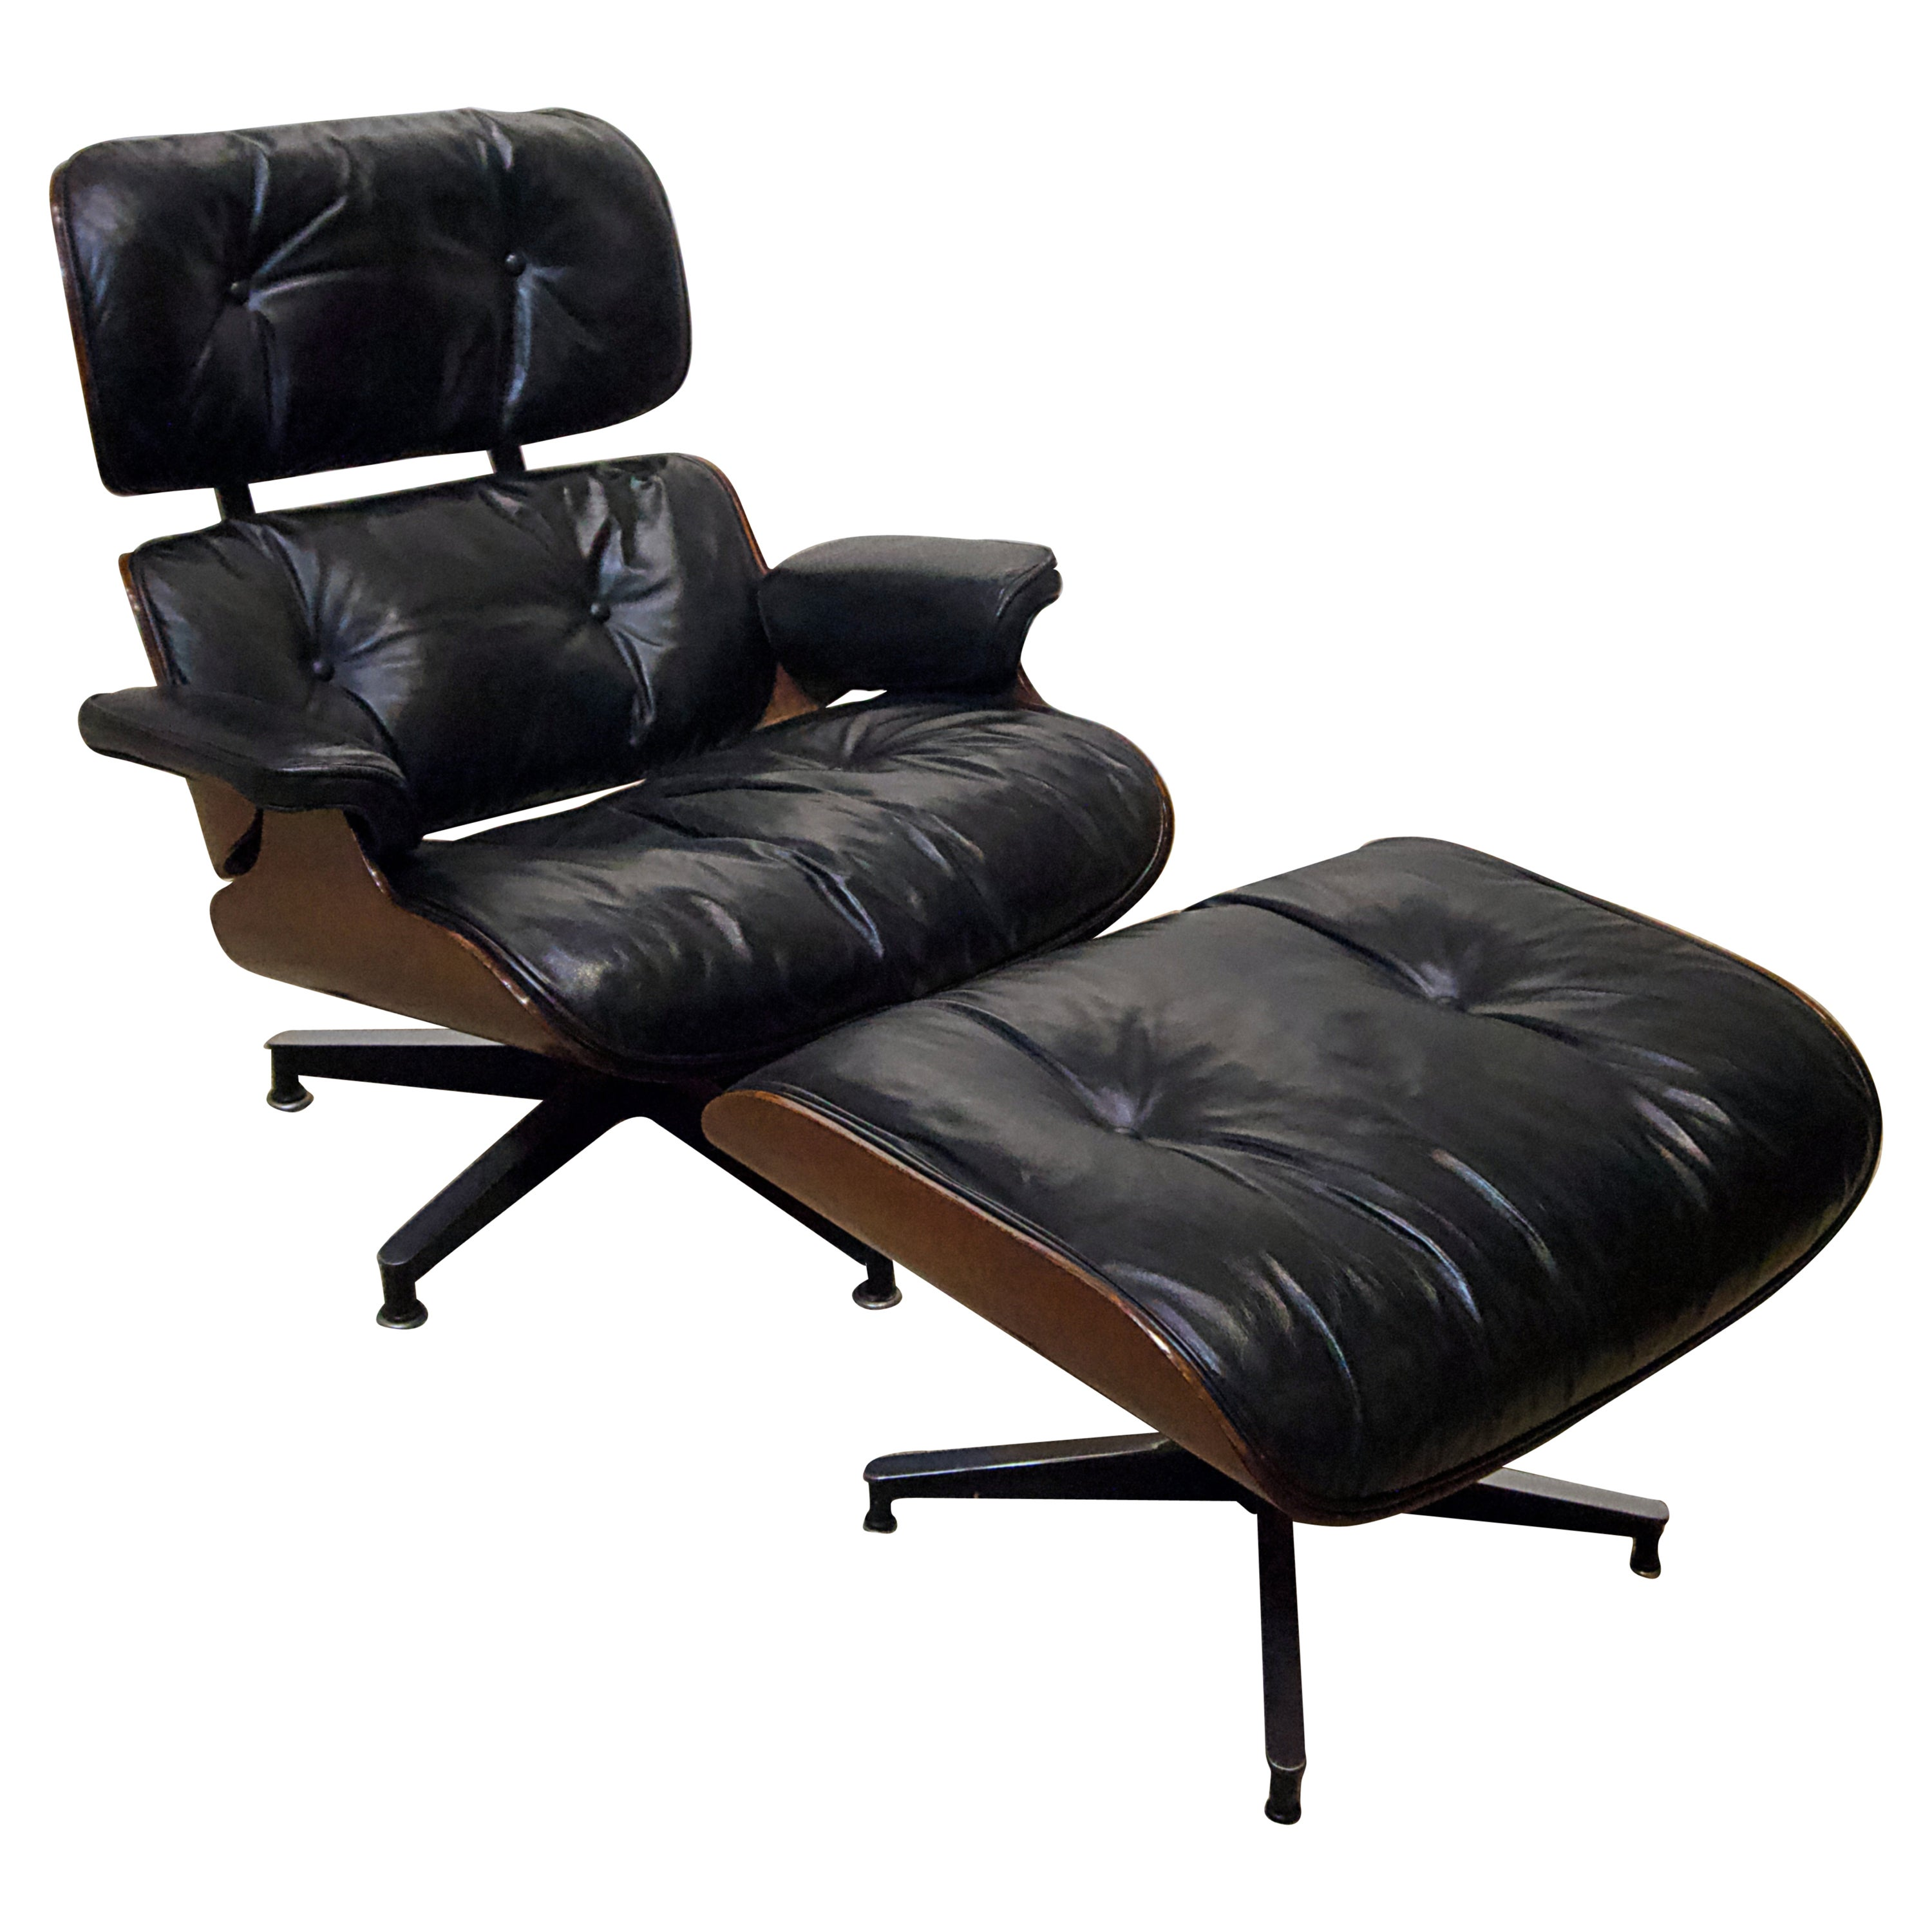 Ames Lounge Chair with Ottoman